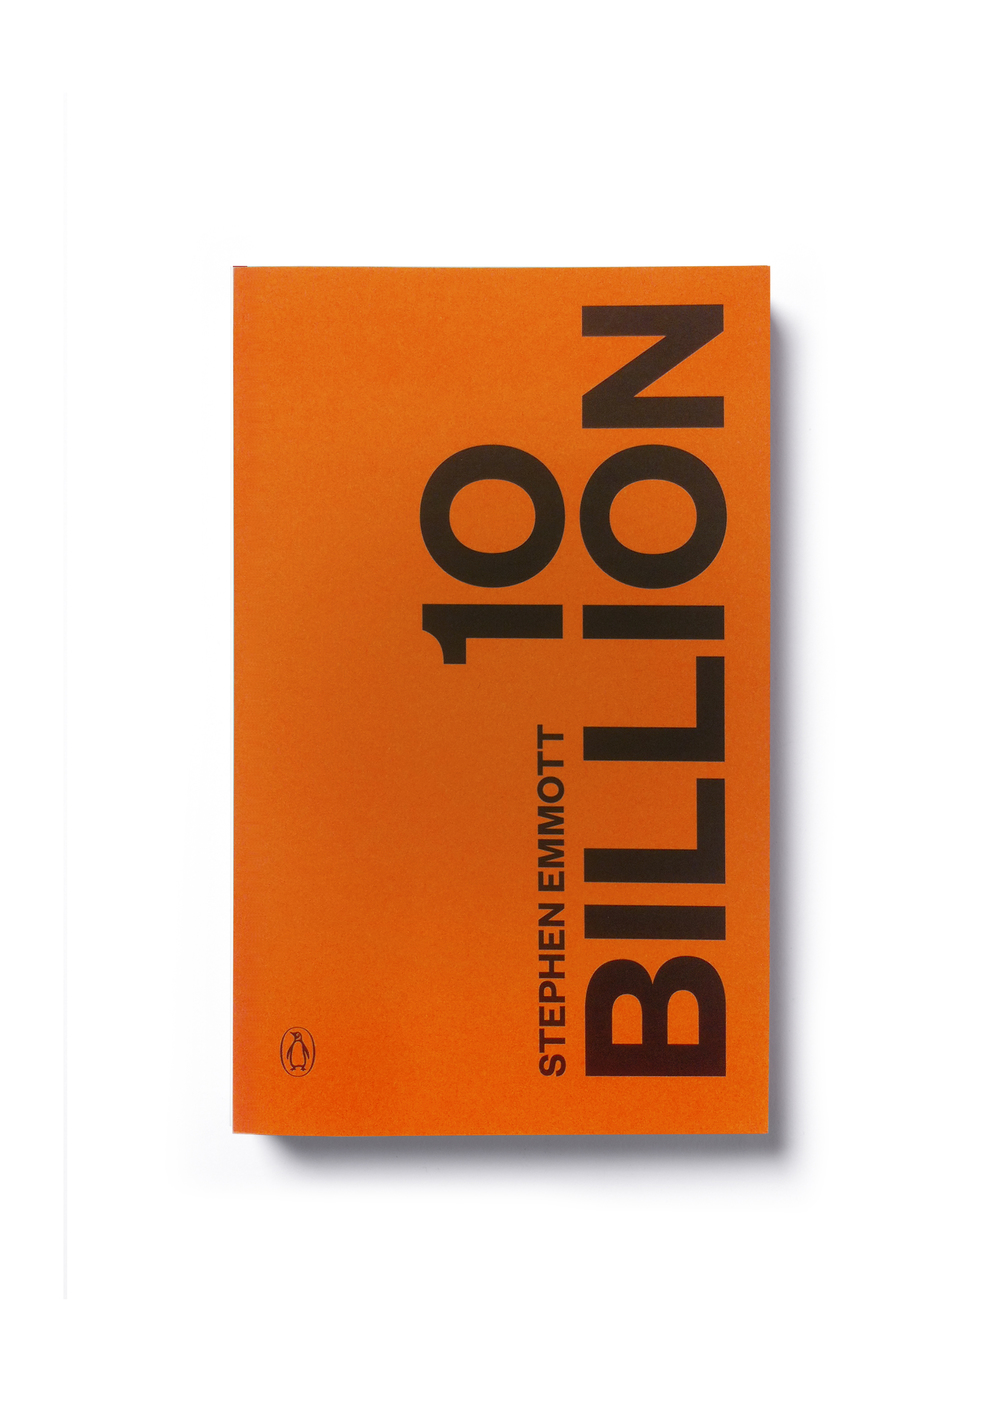 Ten Billion by Stephen Emmott - Art Direction: Jim Stoddart Design: Yes Studio